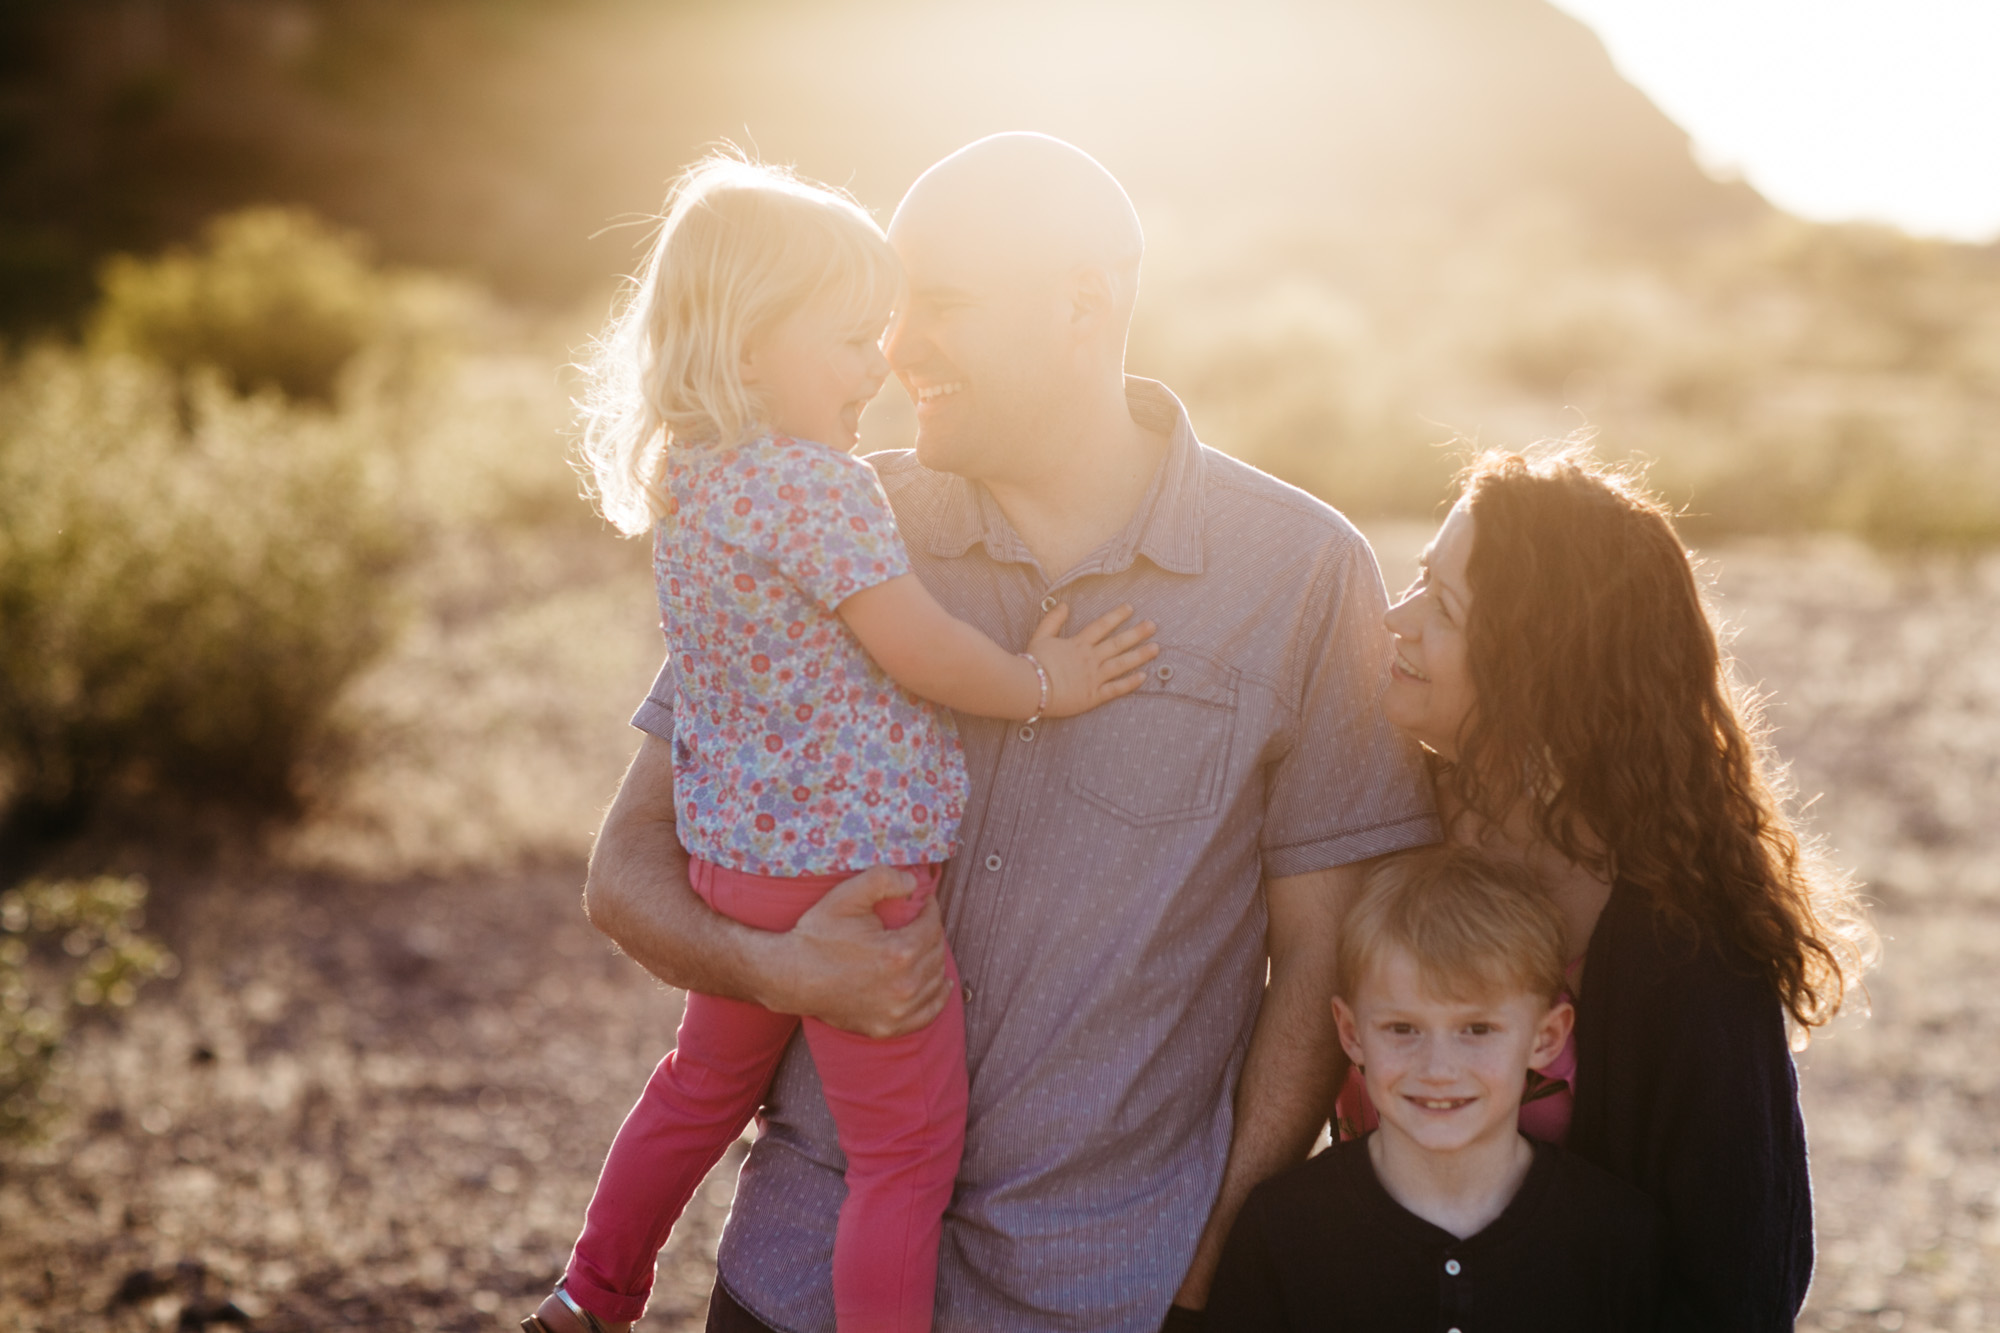 scottsdale-family-lifestyle-photographer-6.jpg